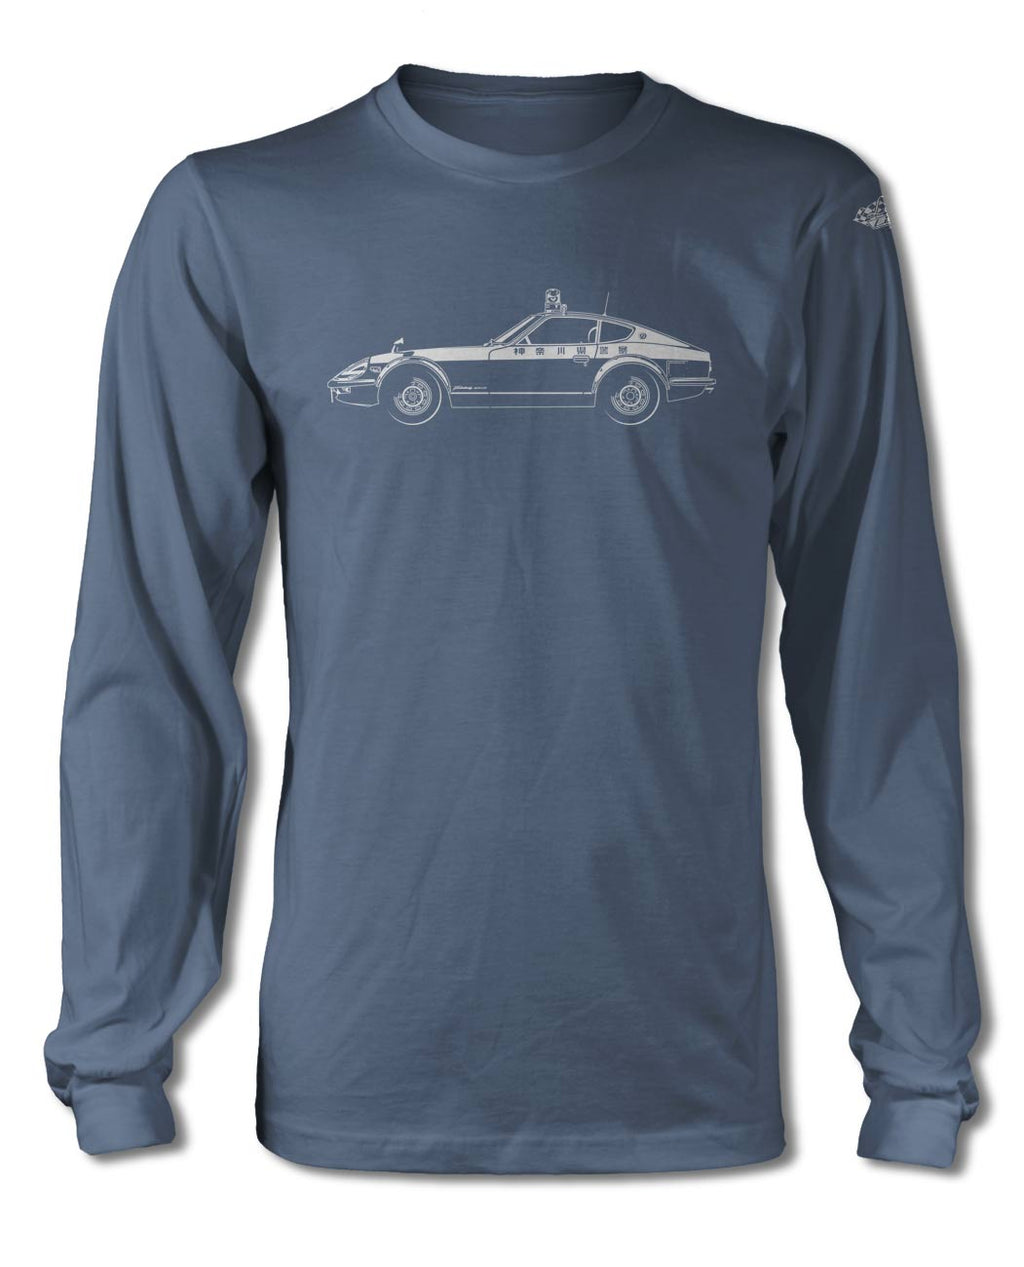 Datsun Fairlady 240Z Japanese Police 1972 T-Shirt - Long Sleeves - Side View